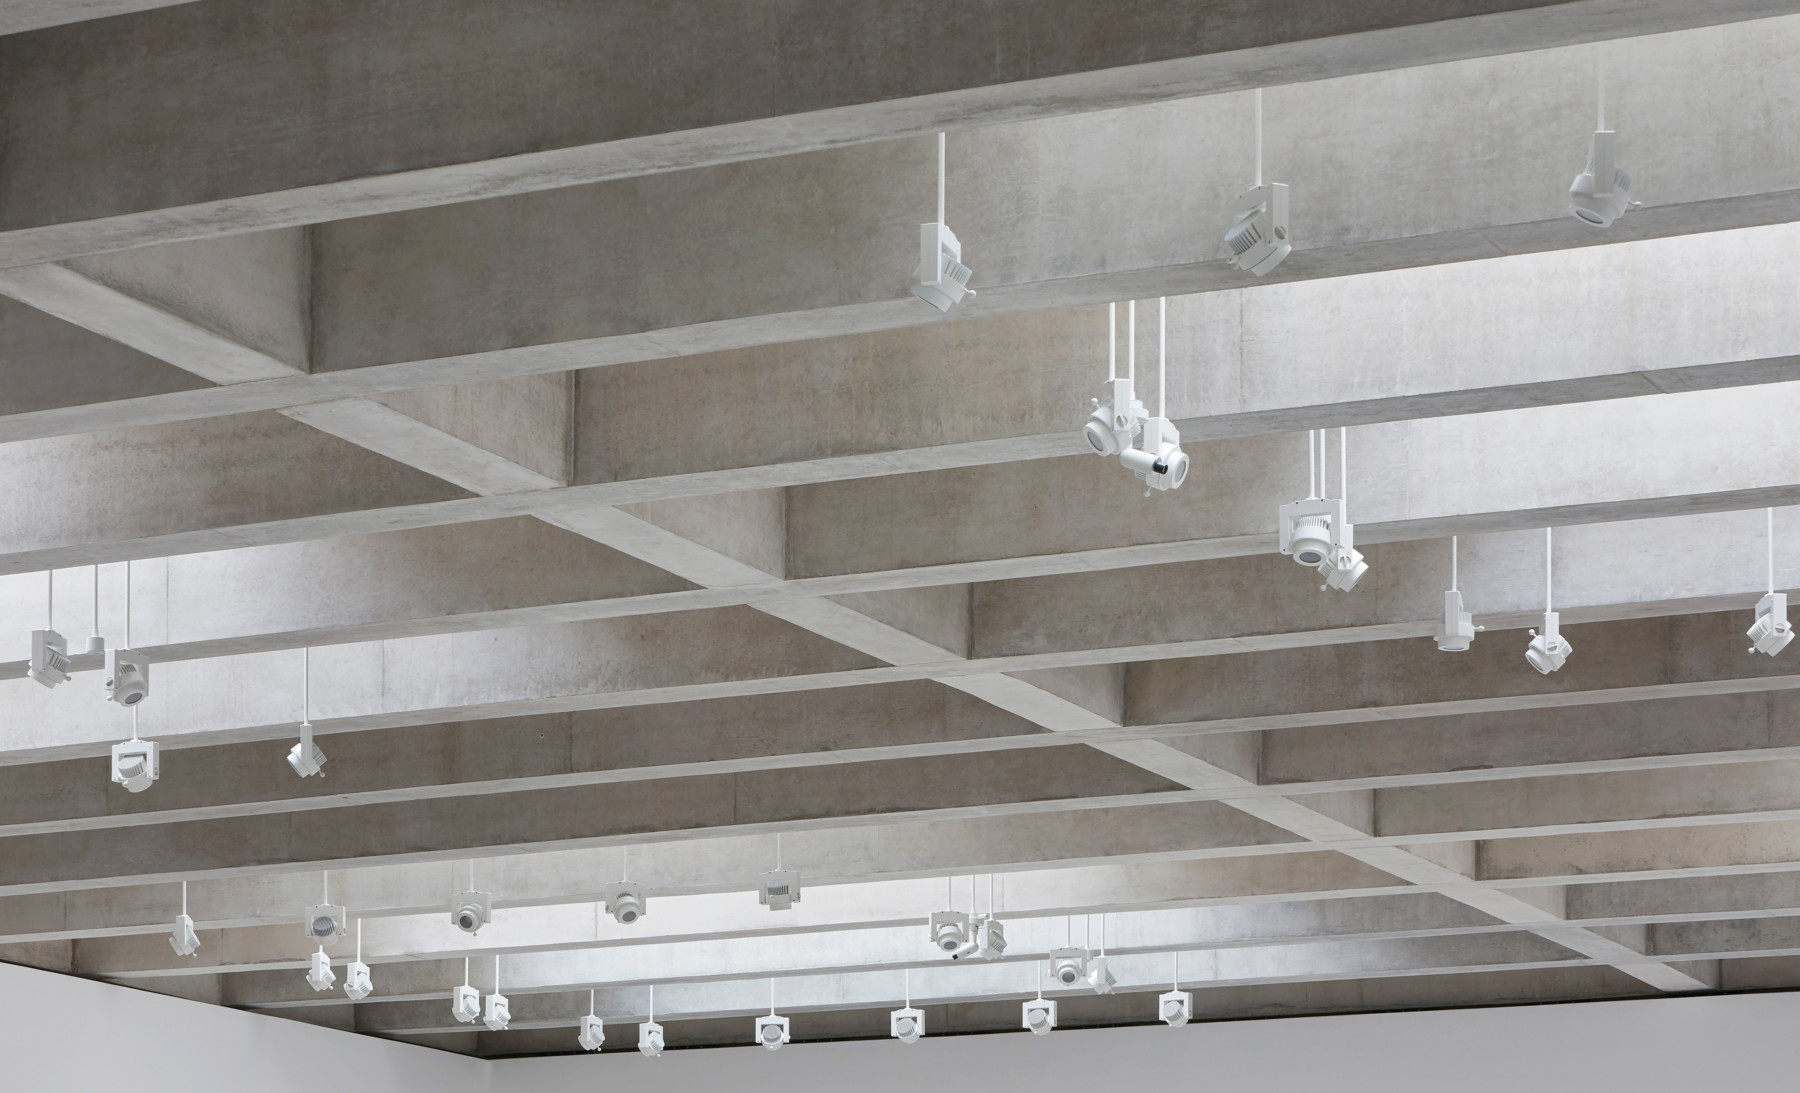 Jamie-fobert-architects-tate-st-ives-concrete-gallery-contemporary-art-hufton+crow